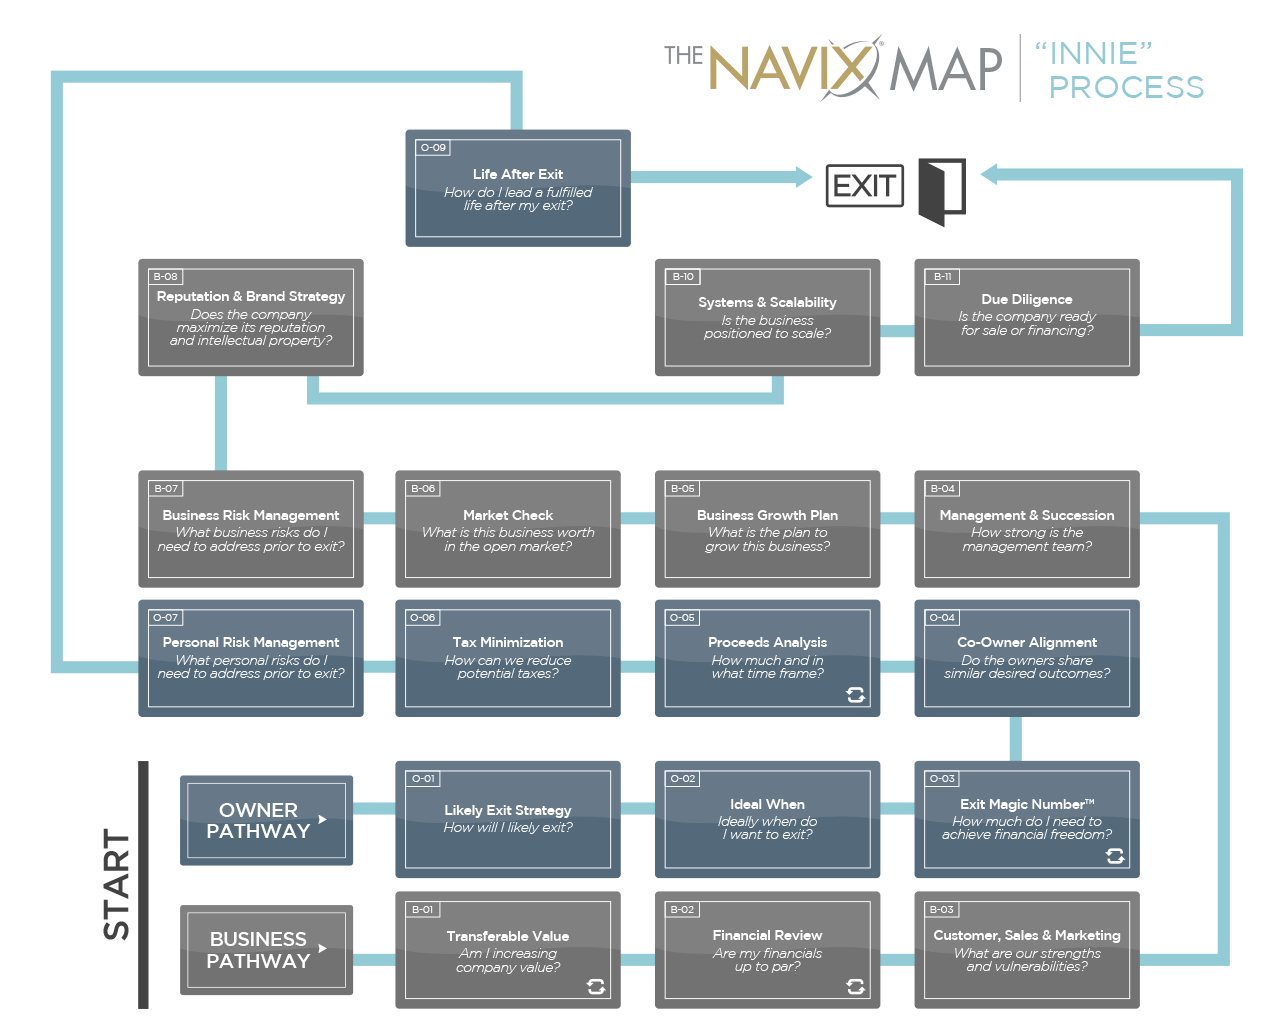 The NAVIX Map | The Innie Process